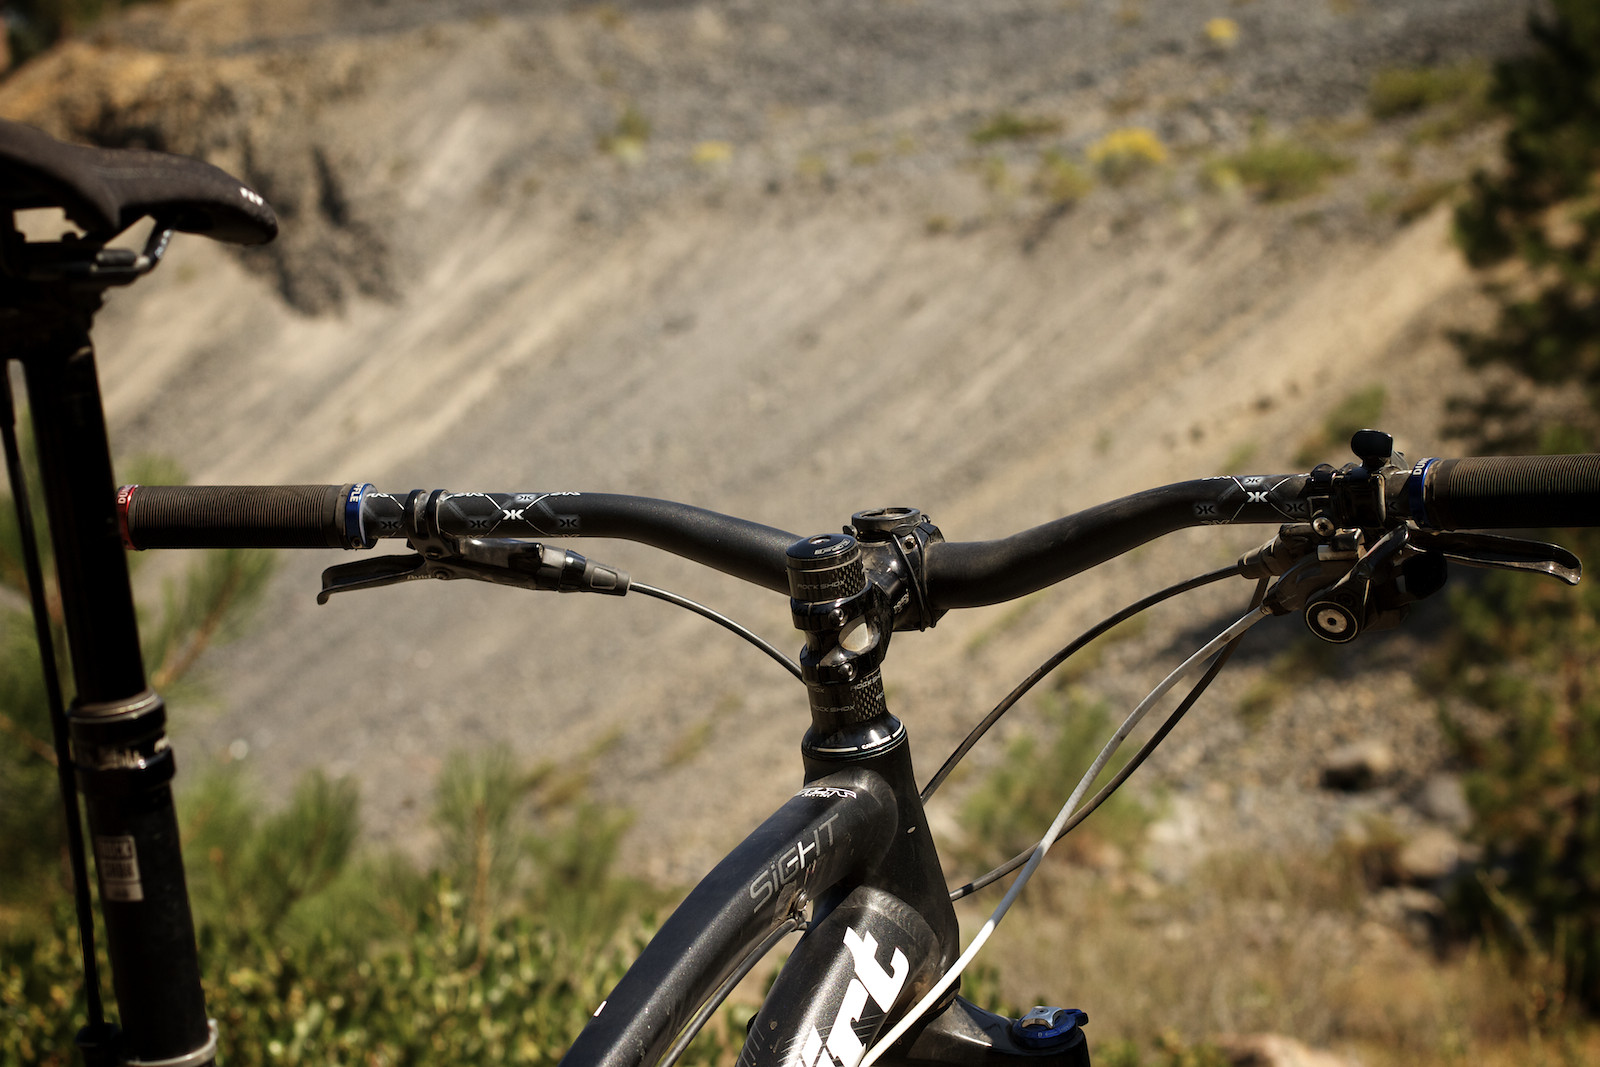 Duncan Riffle's Norco Sight Cockpit - corytepper.com - Mountain Biking Pictures - Vital MTB